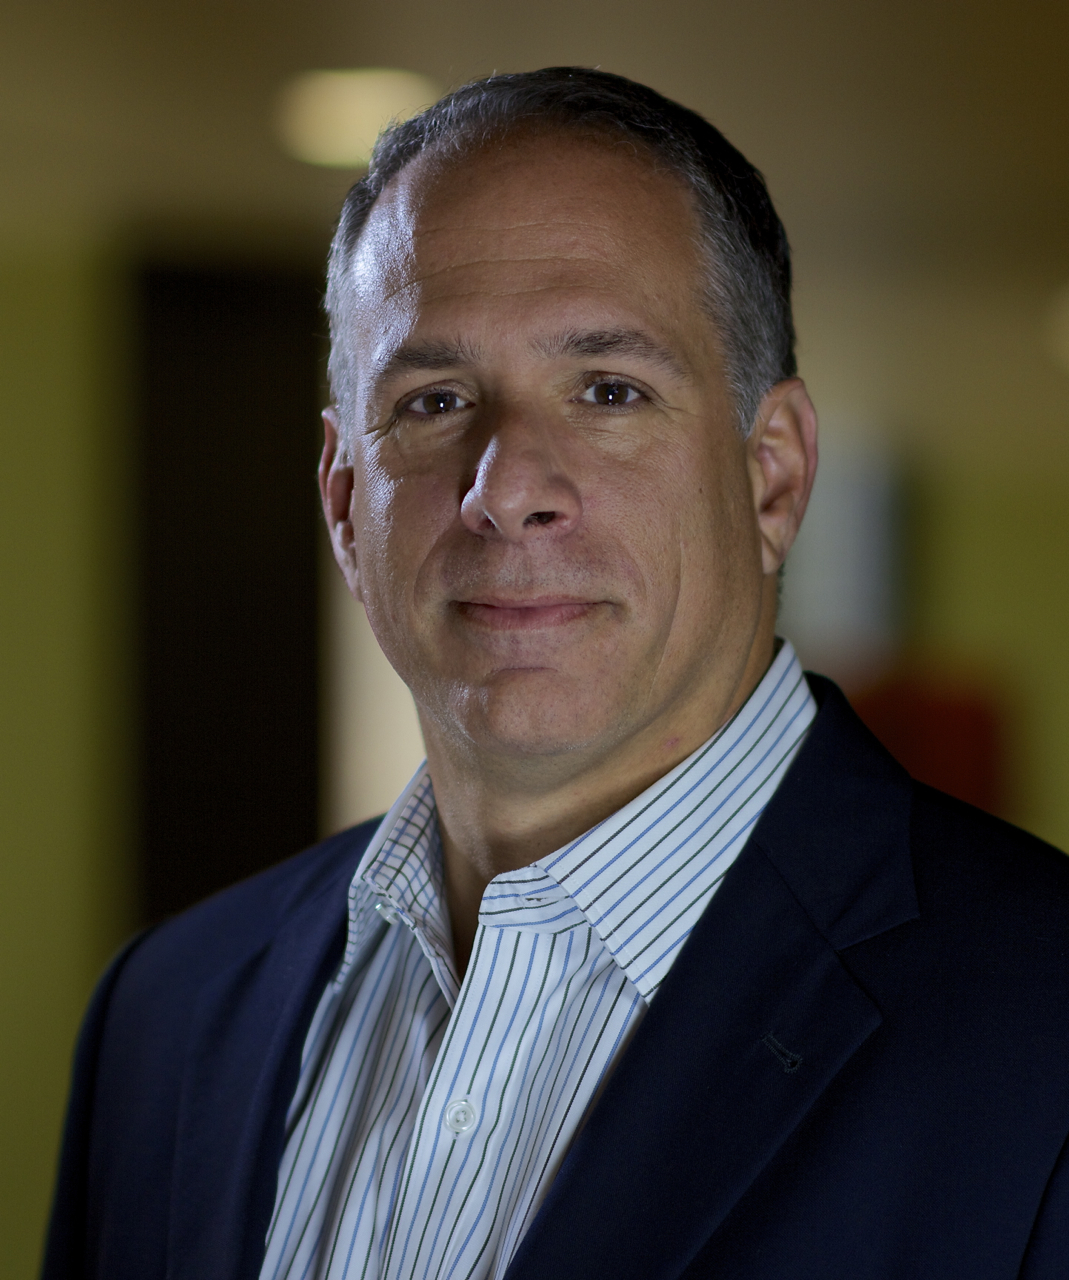 Procore Welcomes Software Industry Veteran Frank Iannotti as VP of Enterprise Sales